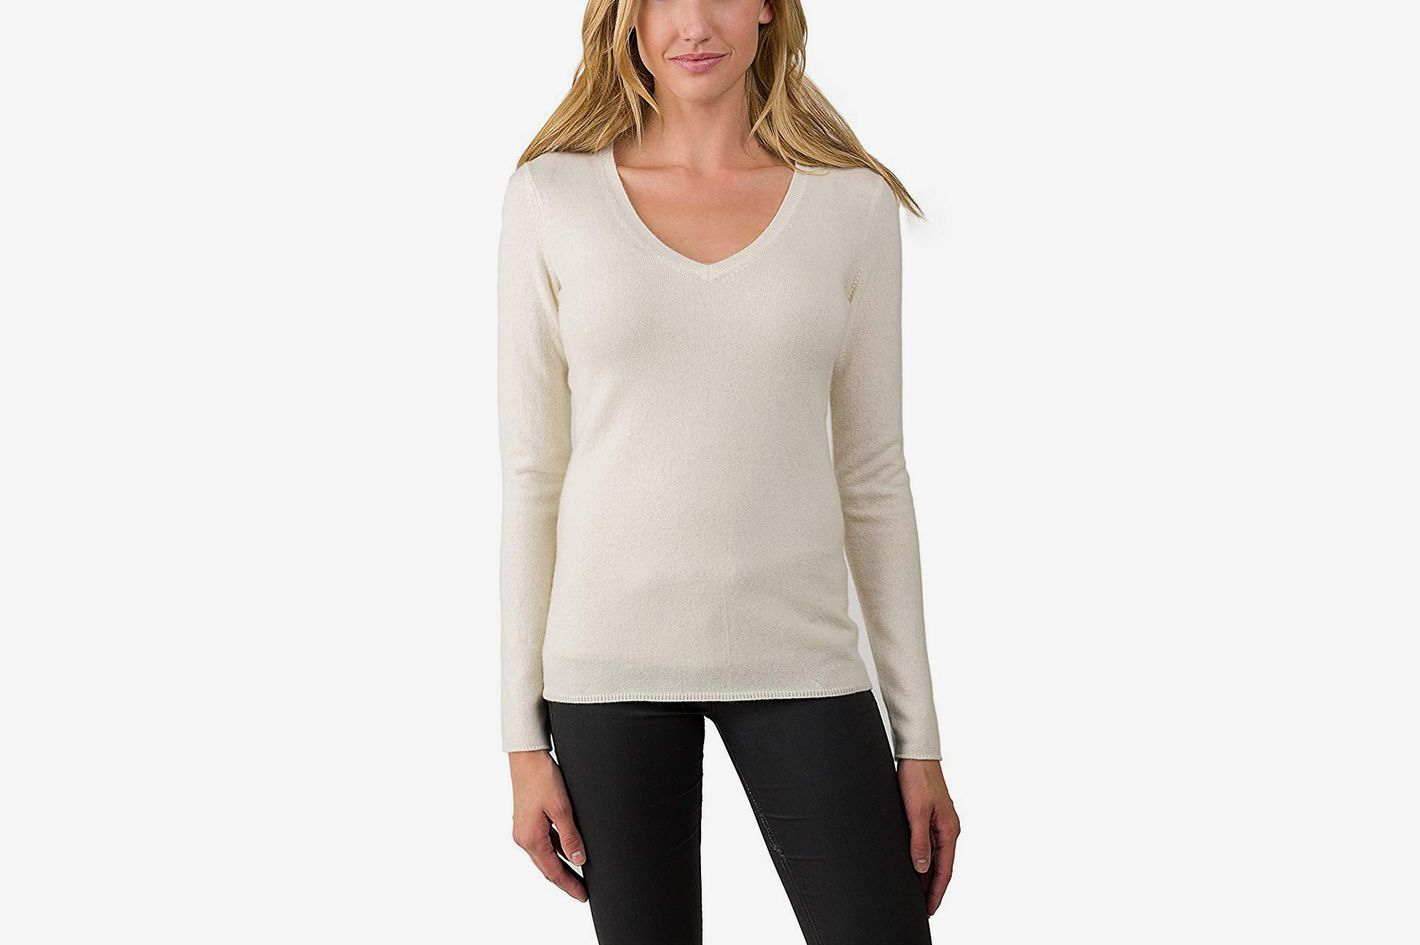 7196b9a89b JENNIE LIU Women s 100% Pure Cashmere Long Sleeve Pullover V Neck Sweater